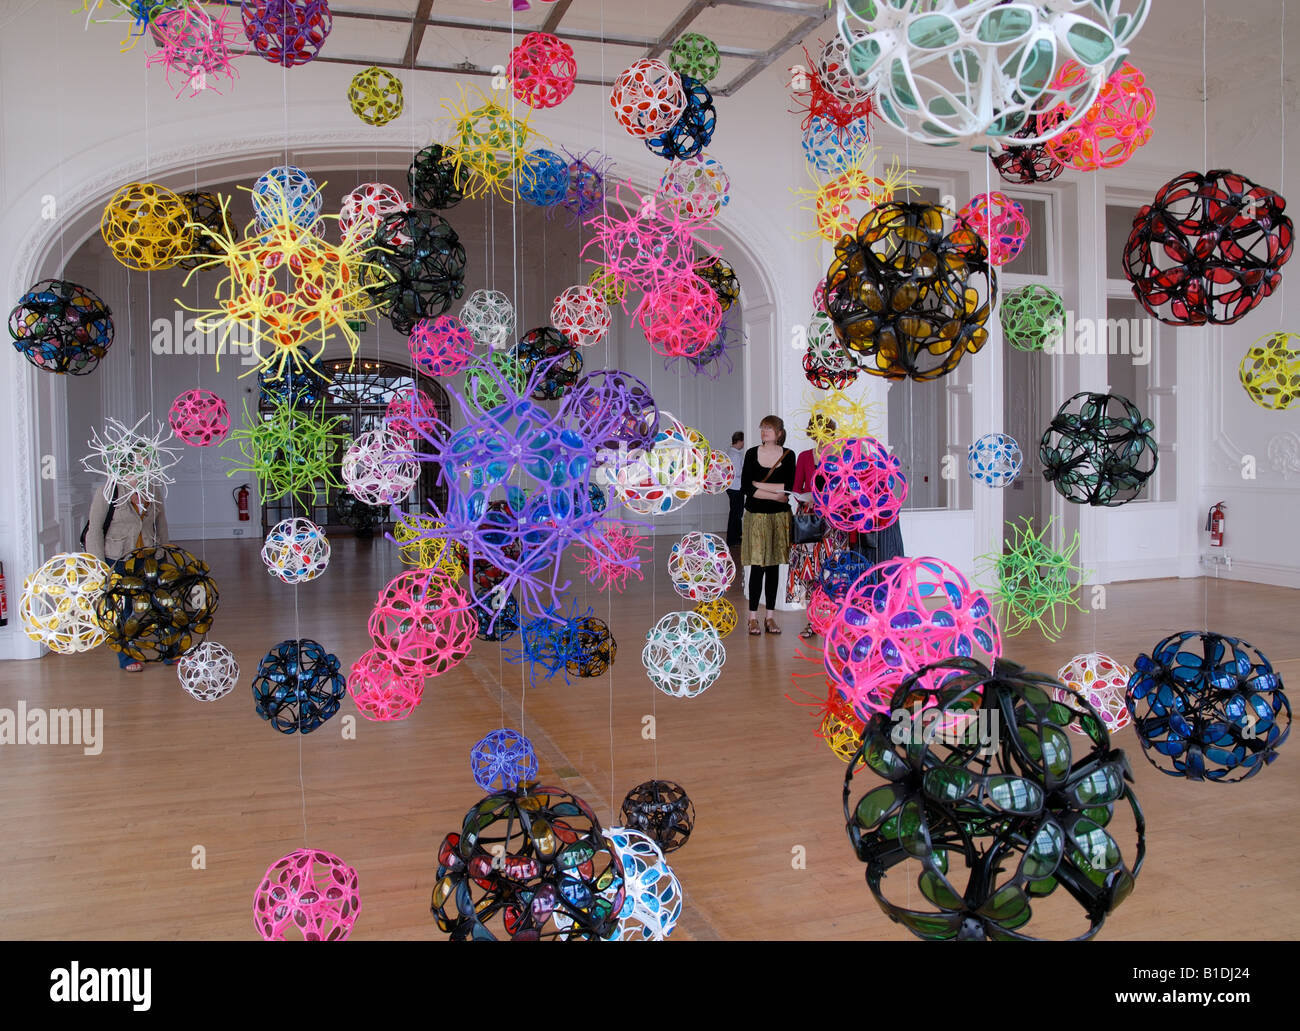 David Batchelor sculpture, Disco Mechanique, at the Metropole Gallery, Folkestone - Stock Image